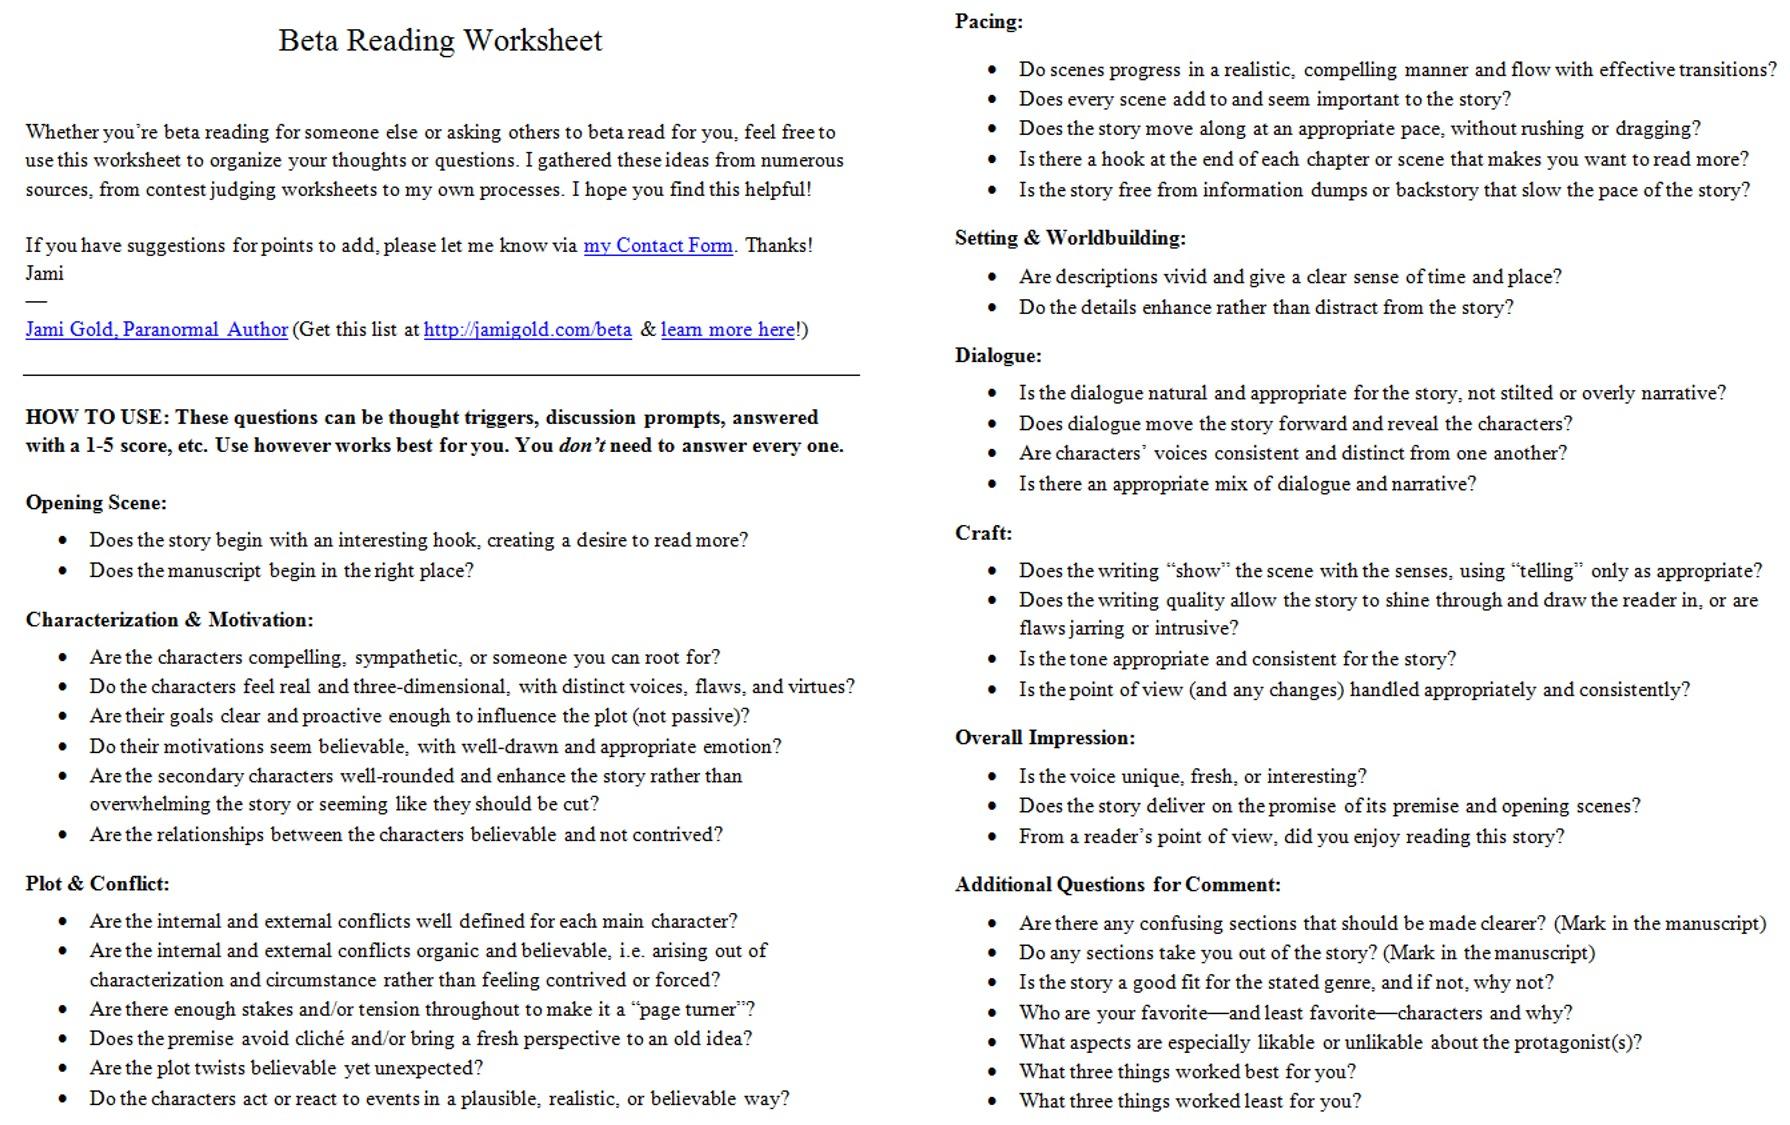 Aldiablosus  Marvellous Worksheets For Writers  Jami Gold Paranormal Author With Entrancing Screen Shot Of The Twopage Beta Reading Worksheet With Beauteous Pshe Worksheets Ks Also Personification Ks Worksheets In Addition Maths Th Grade Worksheet And Informal Letter Writing Worksheets As Well As Free Printable Comma Worksheets Additionally Past Present Tense Worksheets From Jamigoldcom With Aldiablosus  Entrancing Worksheets For Writers  Jami Gold Paranormal Author With Beauteous Screen Shot Of The Twopage Beta Reading Worksheet And Marvellous Pshe Worksheets Ks Also Personification Ks Worksheets In Addition Maths Th Grade Worksheet From Jamigoldcom